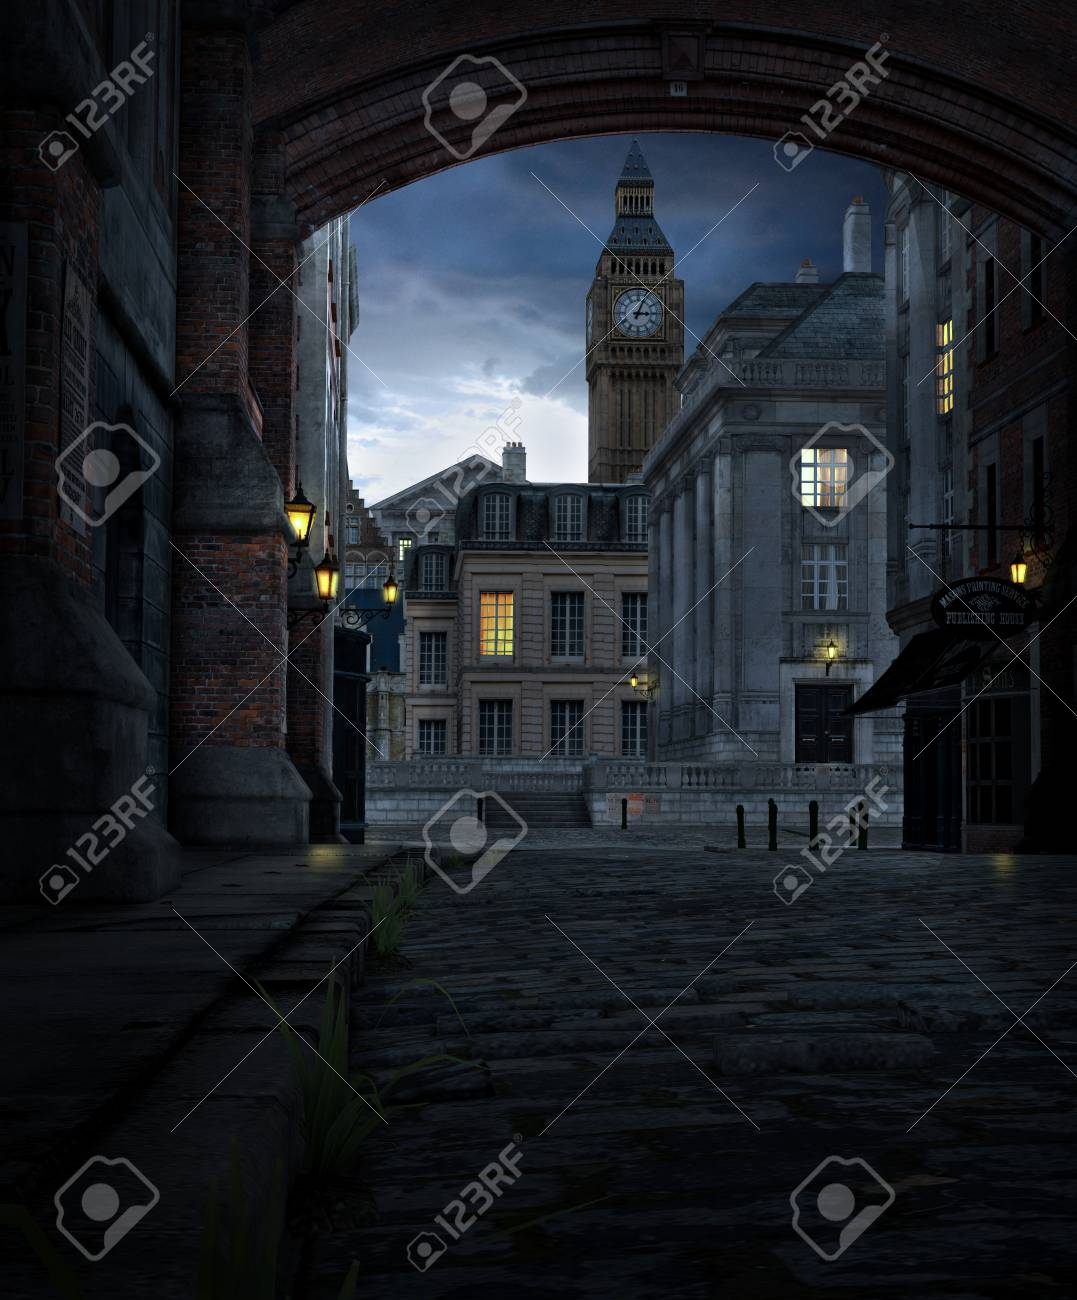 3D render of a London street scene at night with 19th century city buildings and Big Ben - 113374554